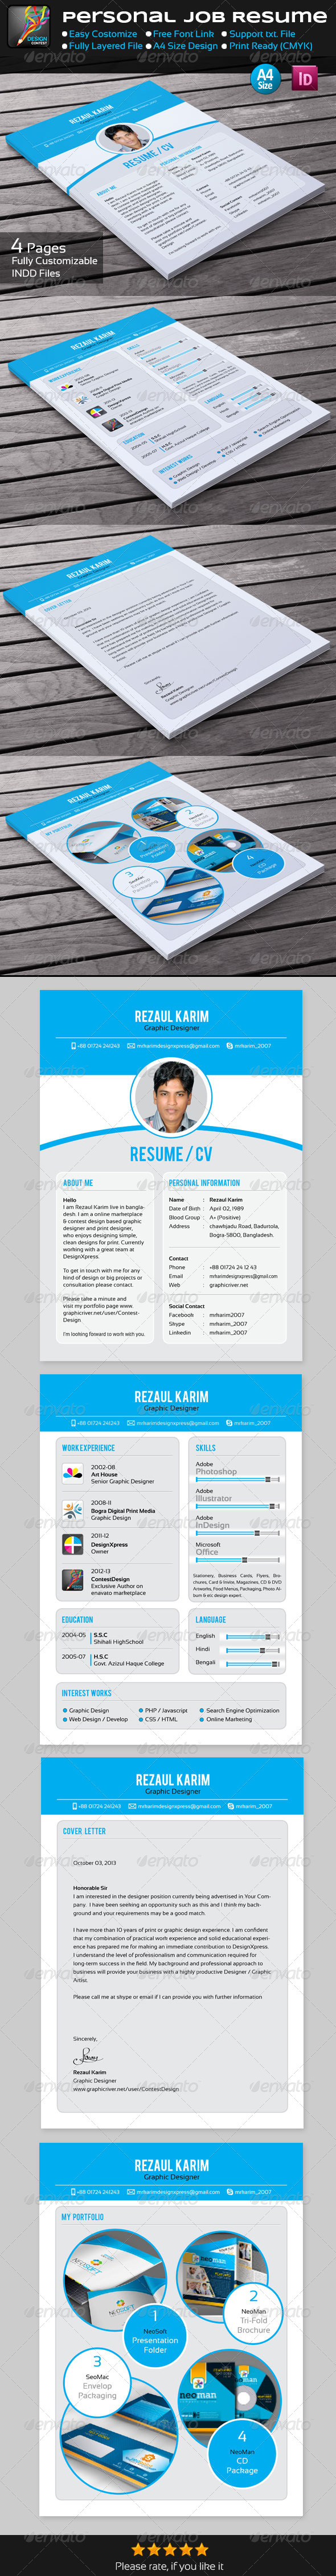 GraphicRiver Personal Job Resume 5777318